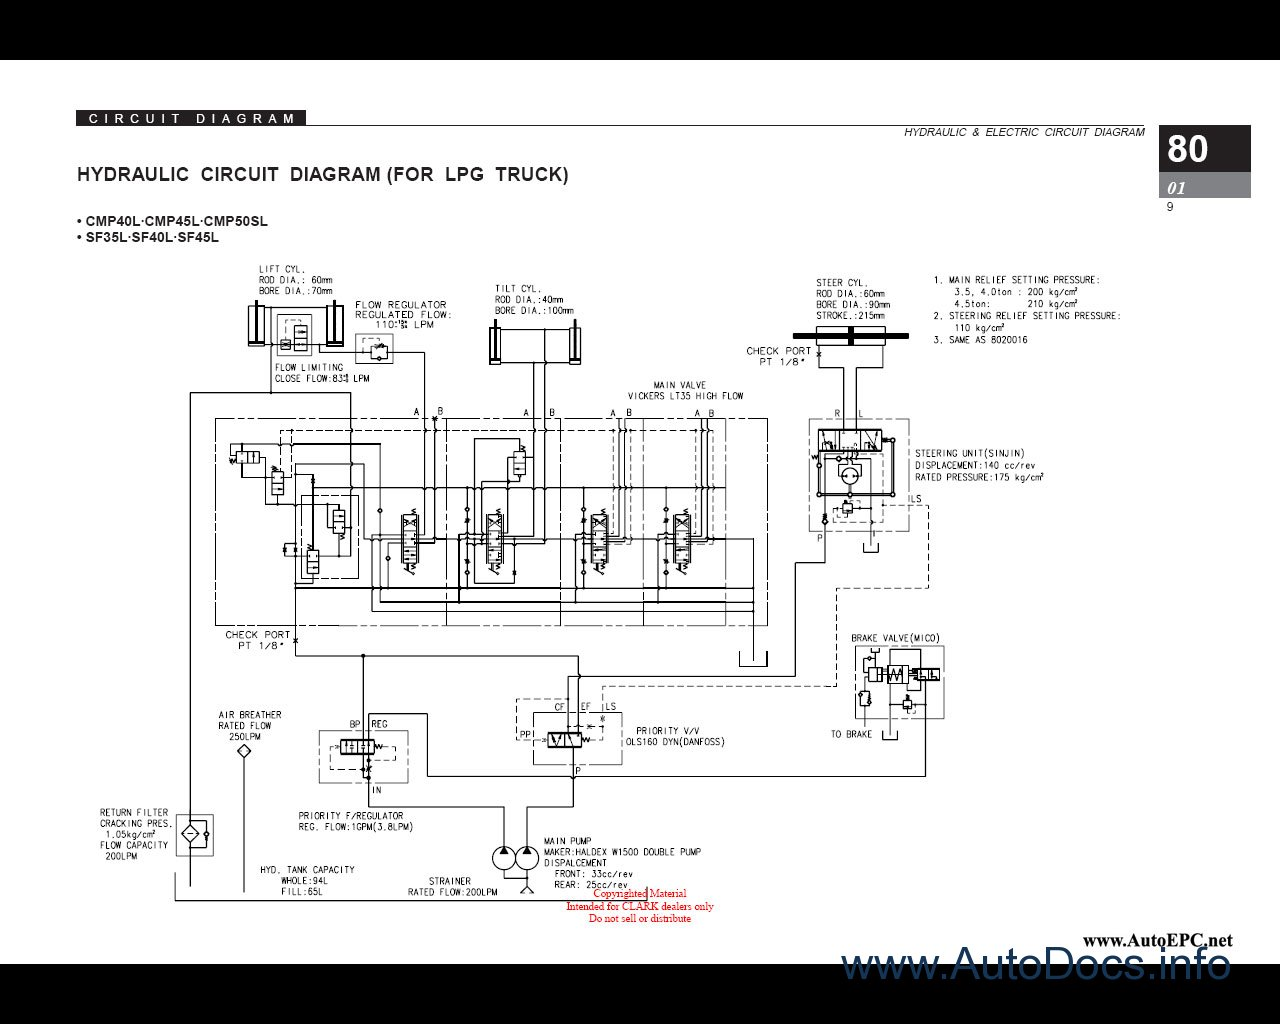 Kubota Rtv Wiring Diagram Kubota Wiring Diagram Images